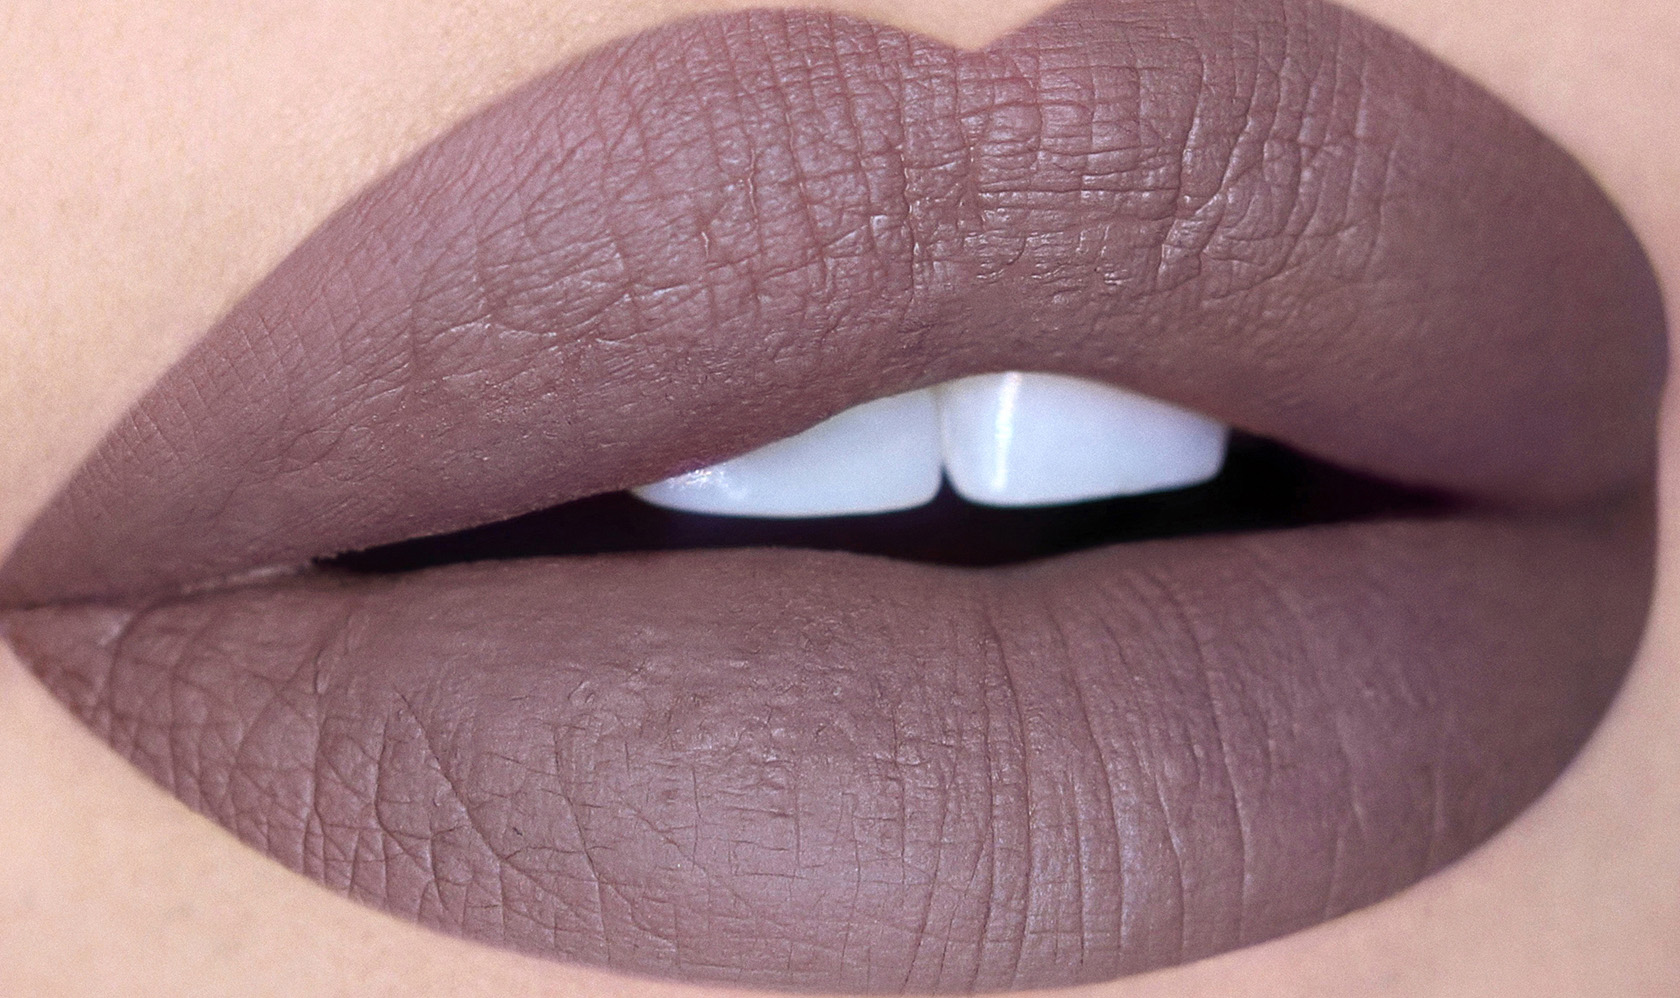 abh-liquid-lipstick-lips